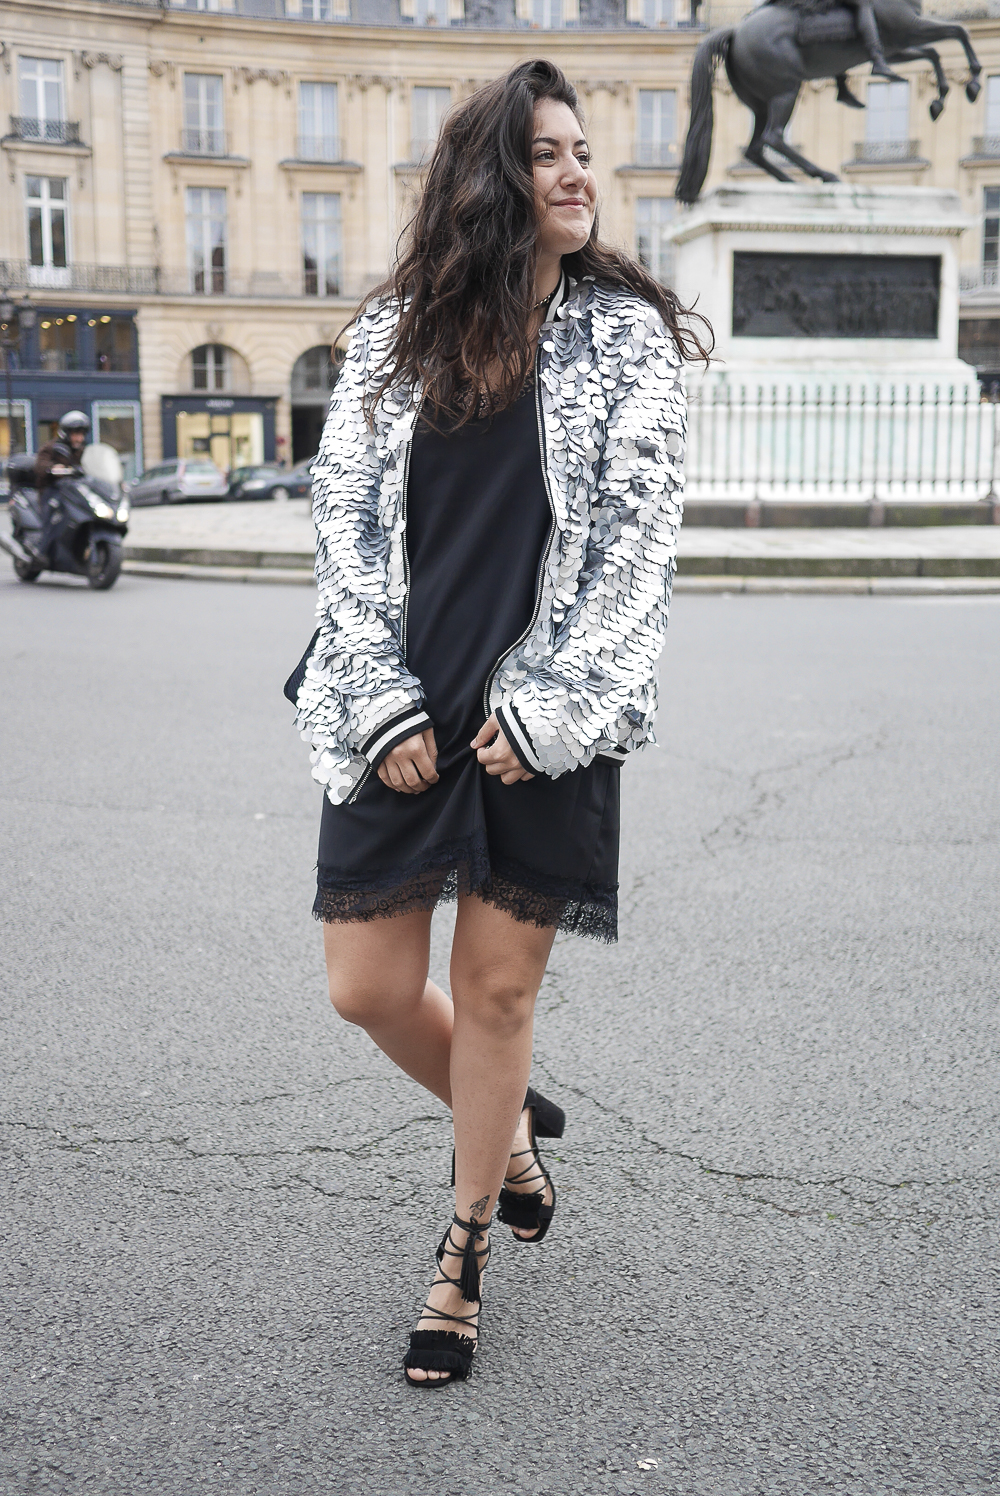 megan vlt tenue de f te la petite robe noire asos et le bomber sequins. Black Bedroom Furniture Sets. Home Design Ideas